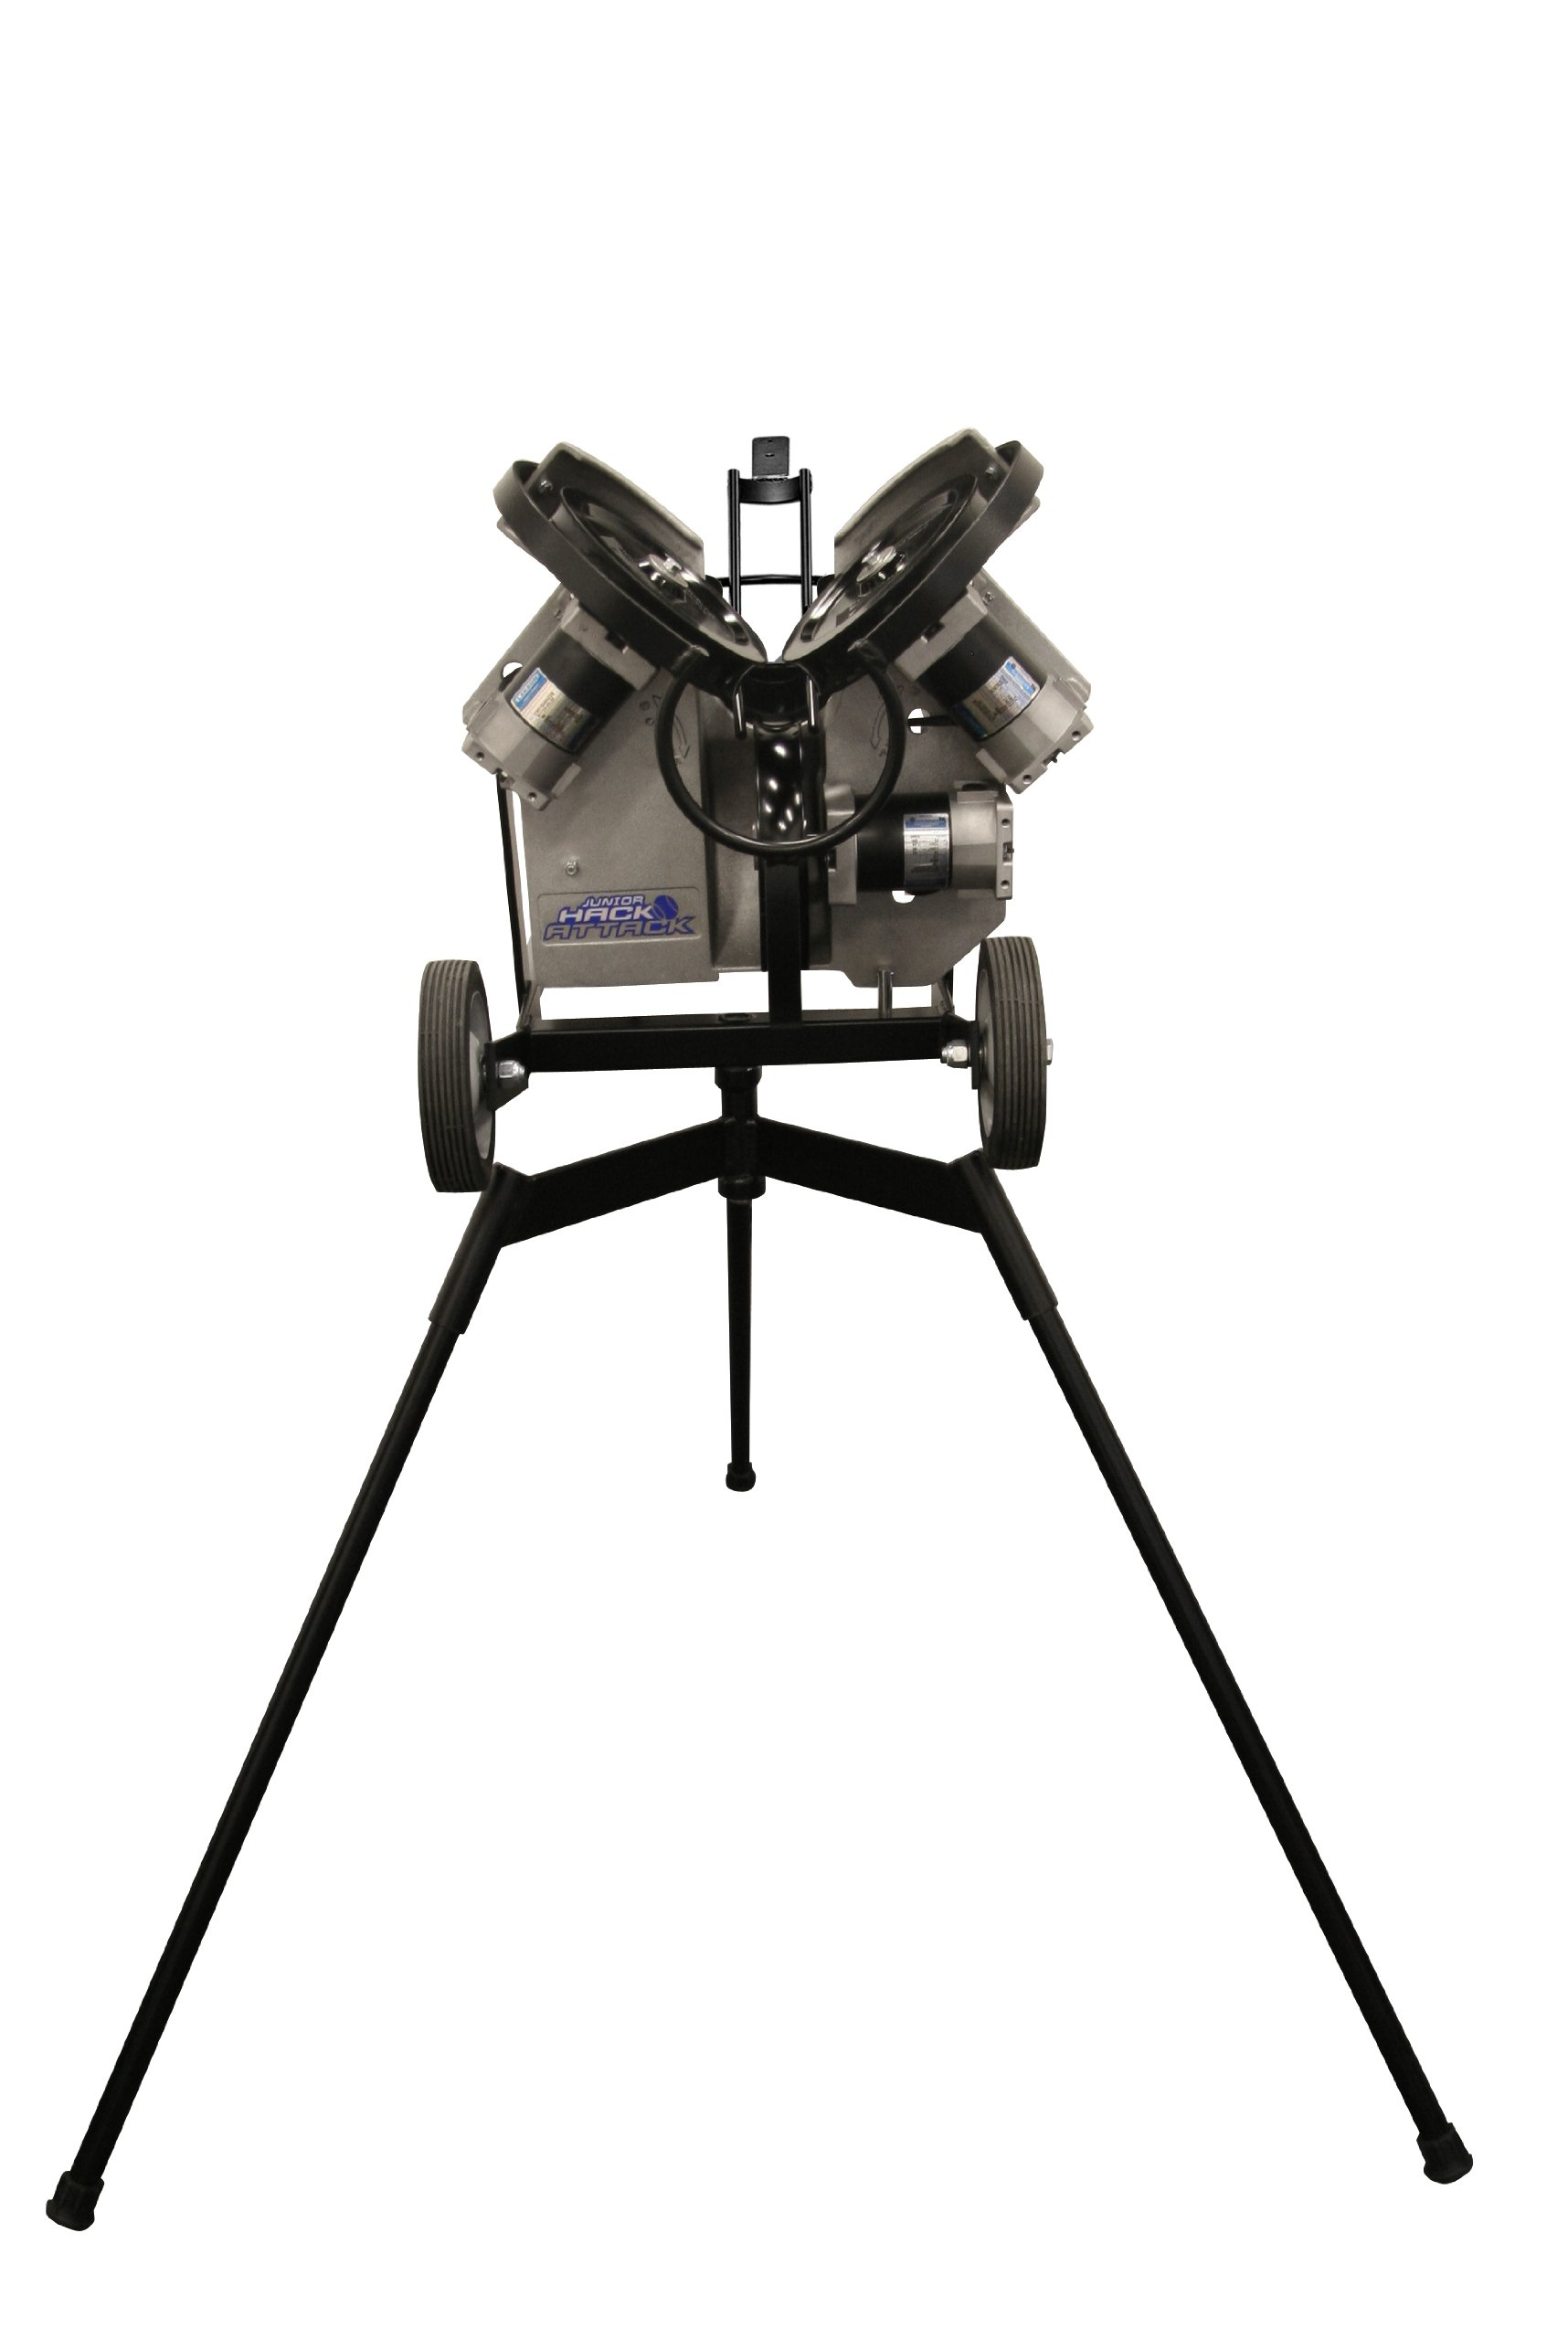 Sports Attack Junior Hack Attack Baseball Pitching Machine by Sports Attack